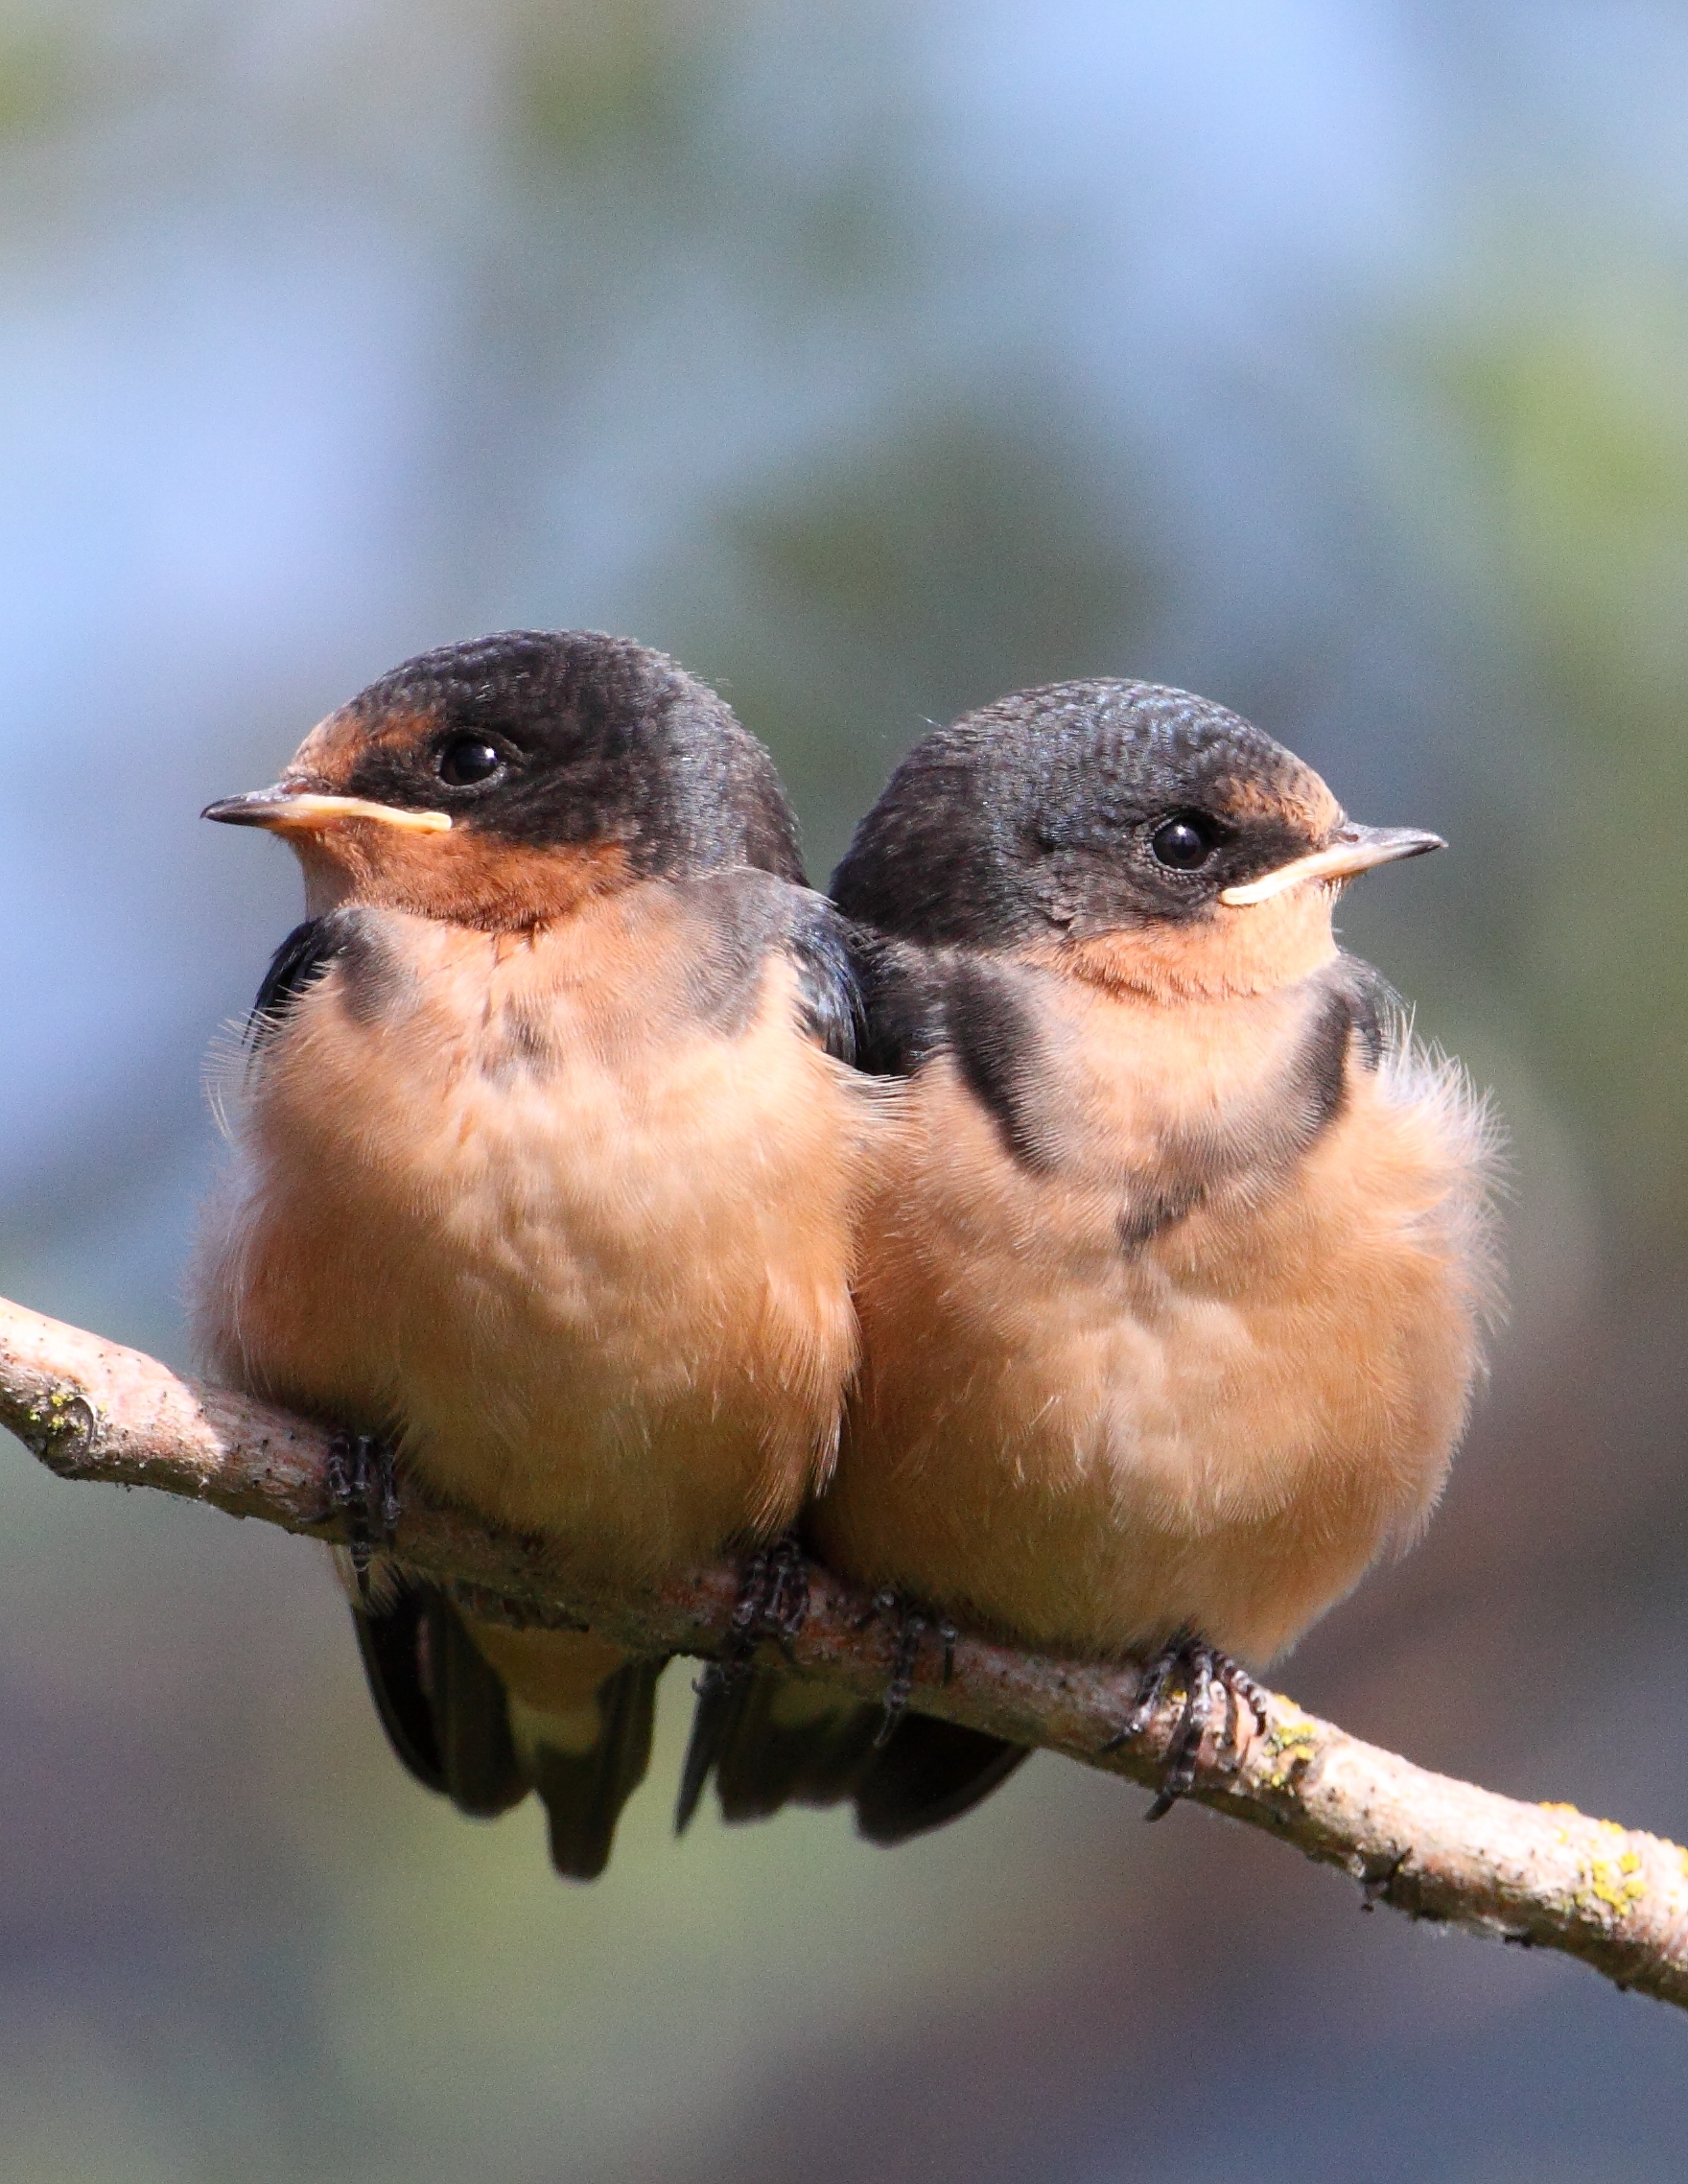 Barn swallow fledglings, photo by Mick Thompson